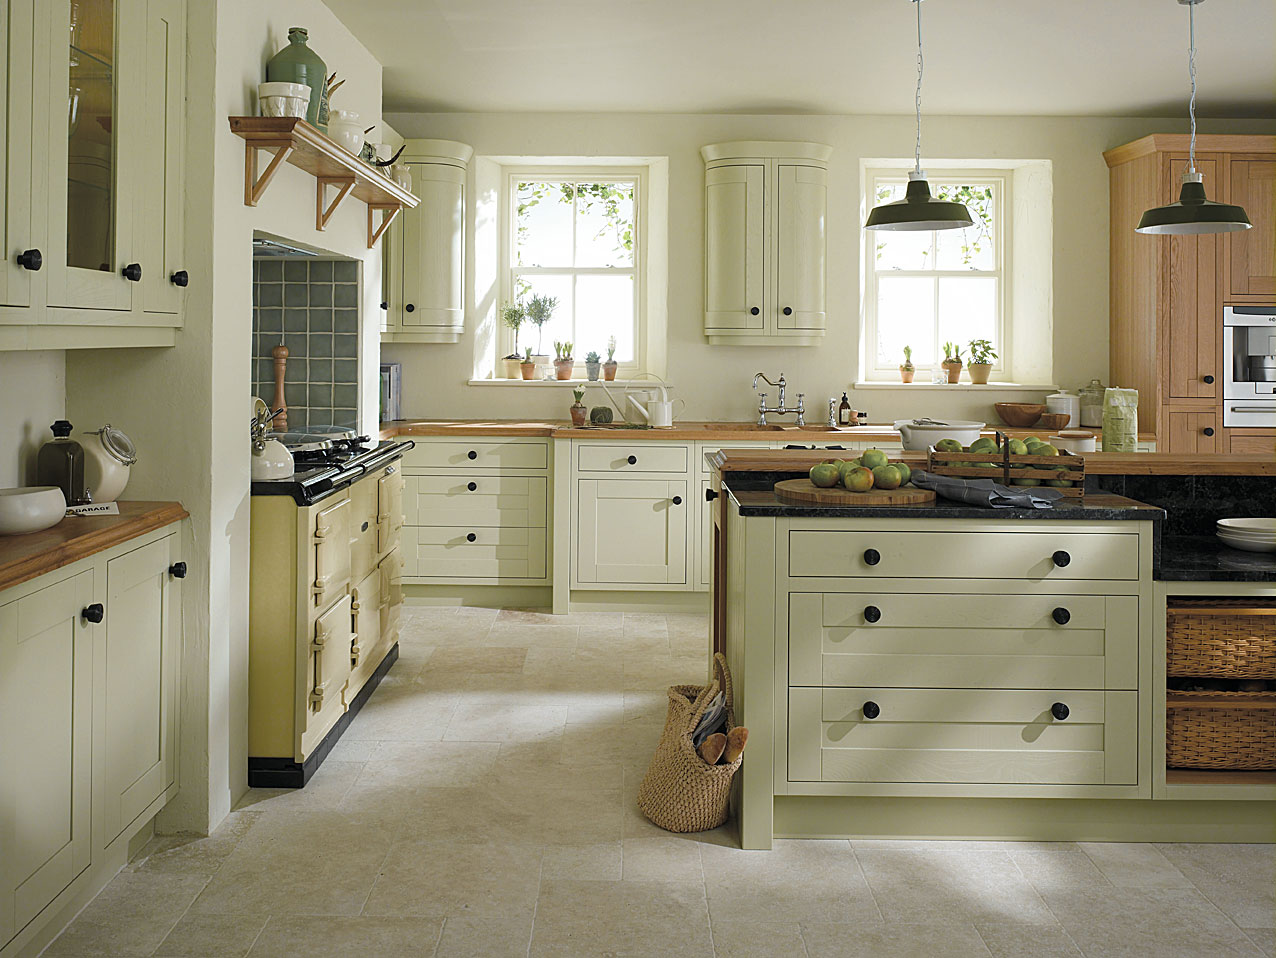 Where To Get A Kitchen From Of 30 Popular Traditional Kitchen Design Ideas